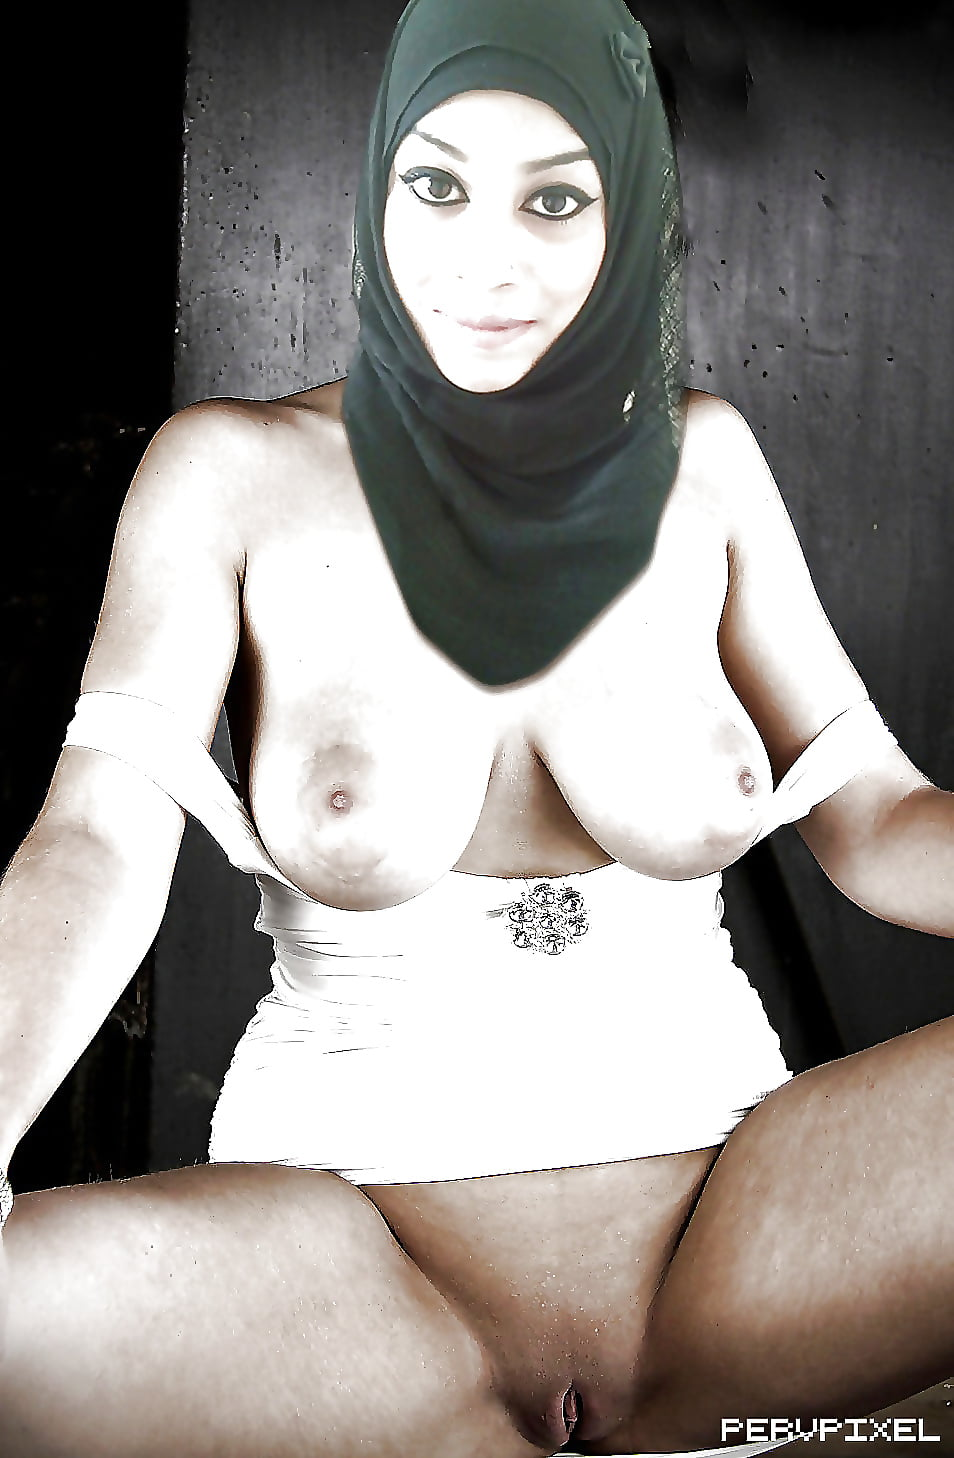 Pornstars list arabian nude womens in hijab swash